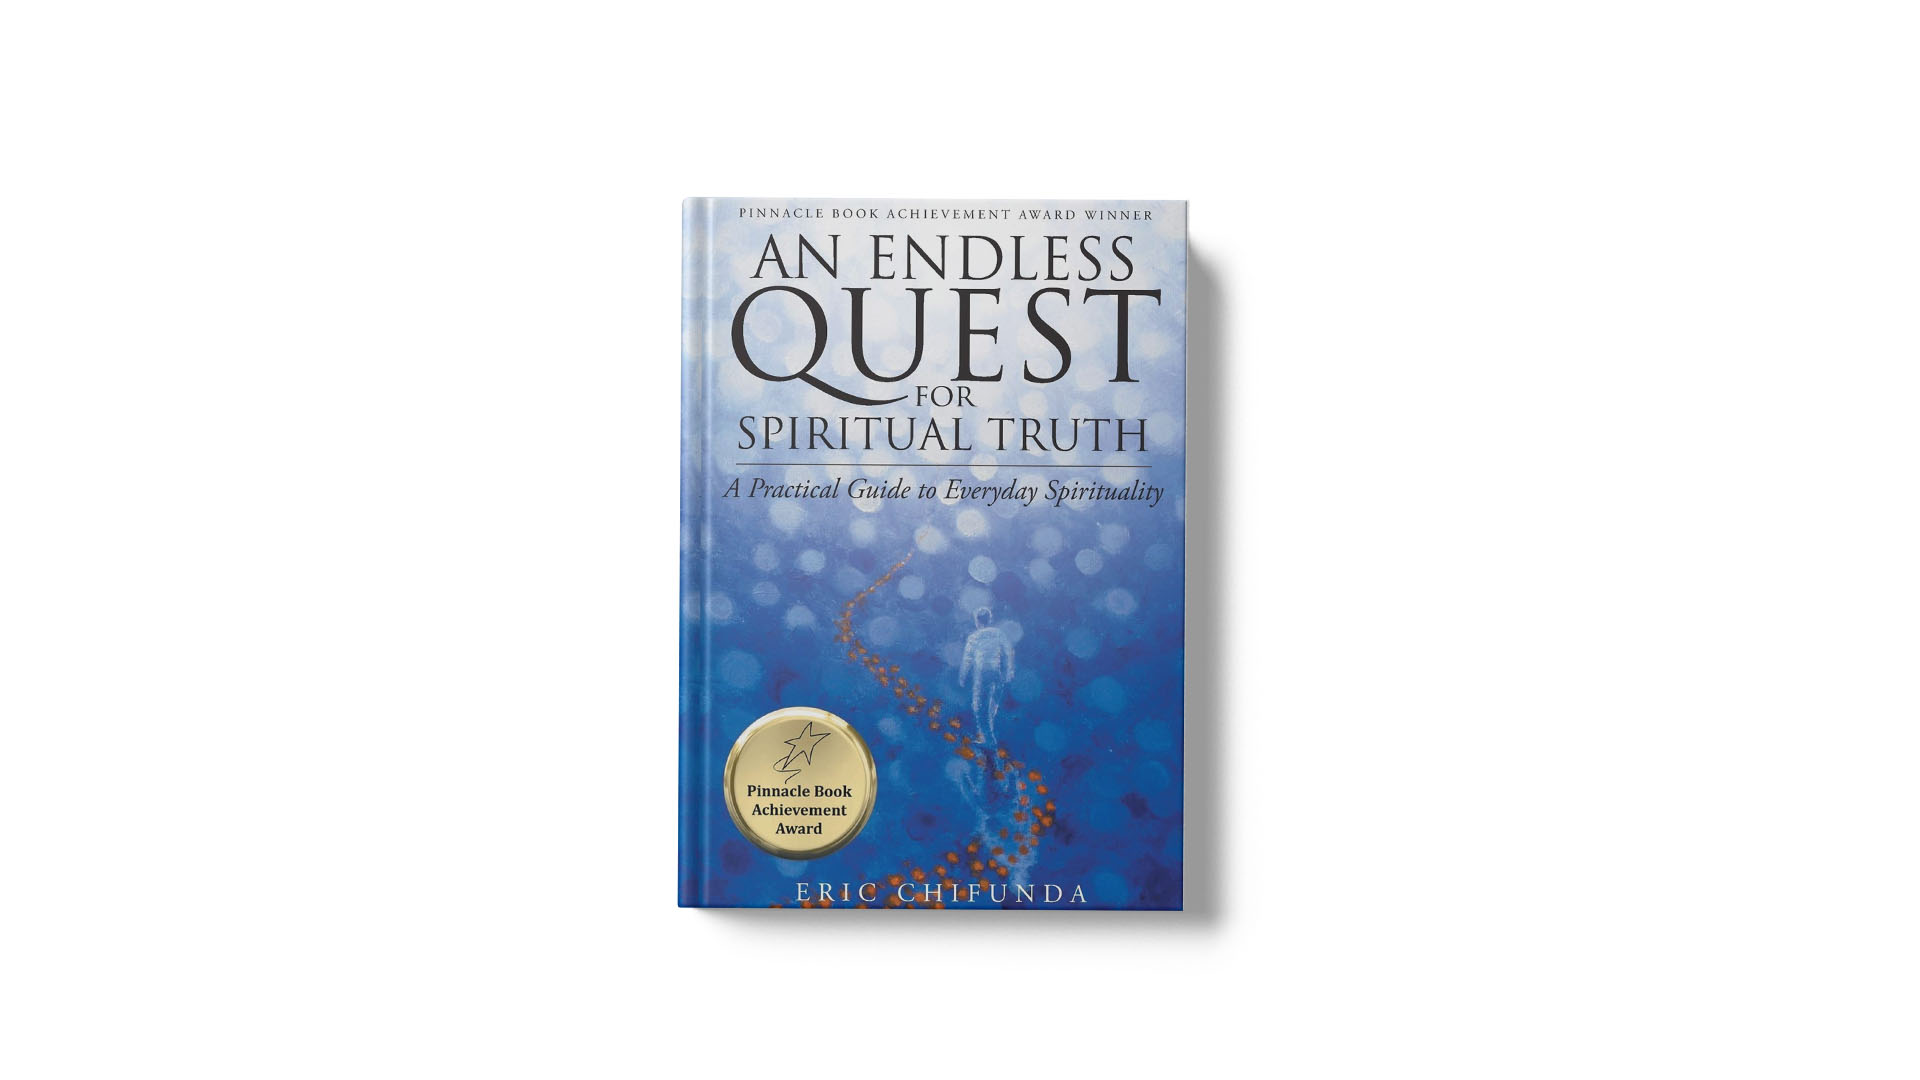 An Endless Quest for Spiritual Truth book cover